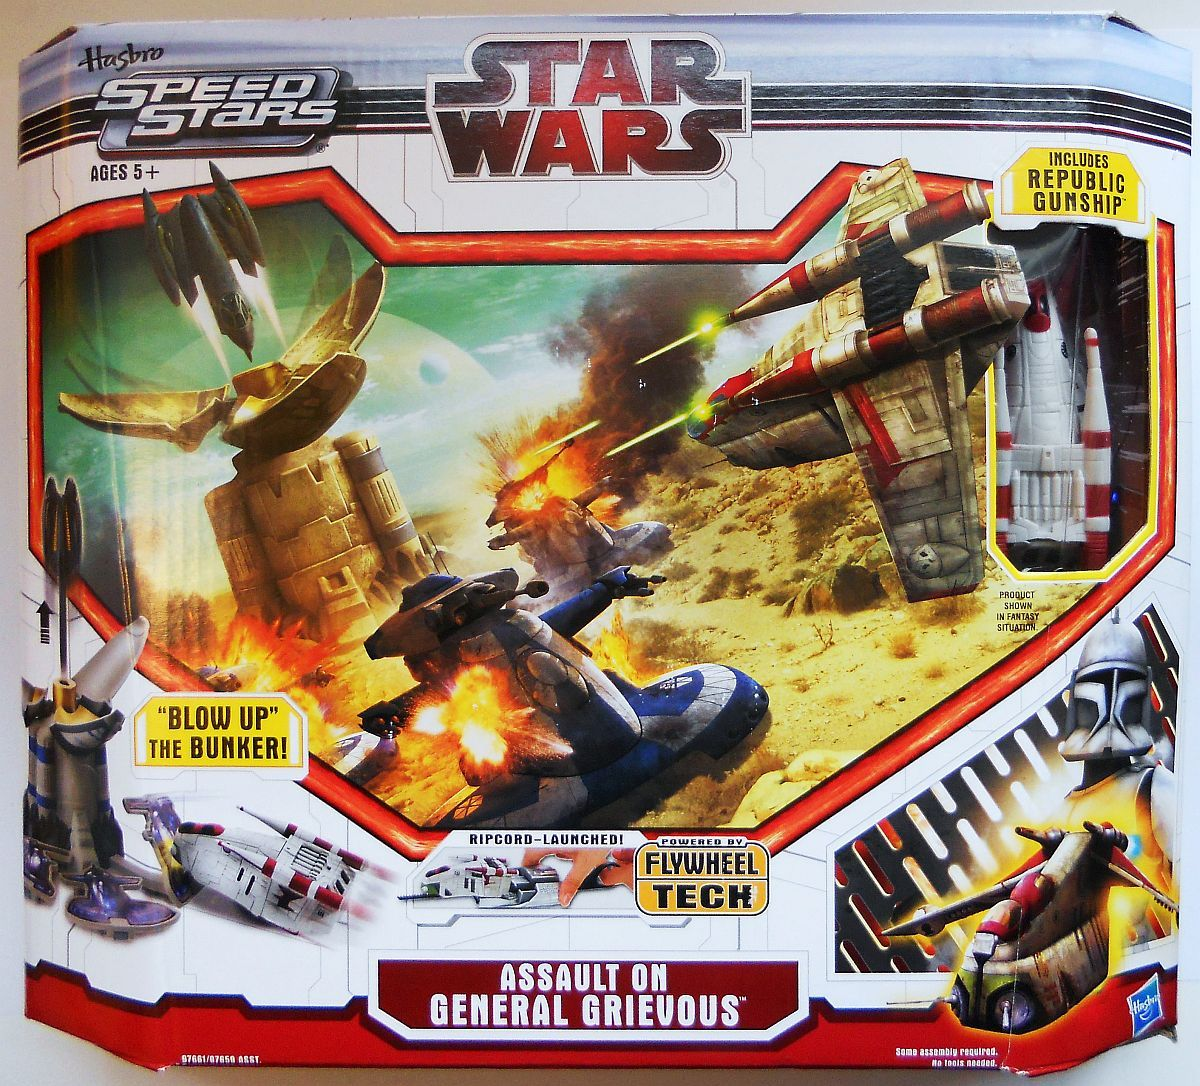 Primary image for Star Wars MicroMachines Assault On General Grievous Playset 2010